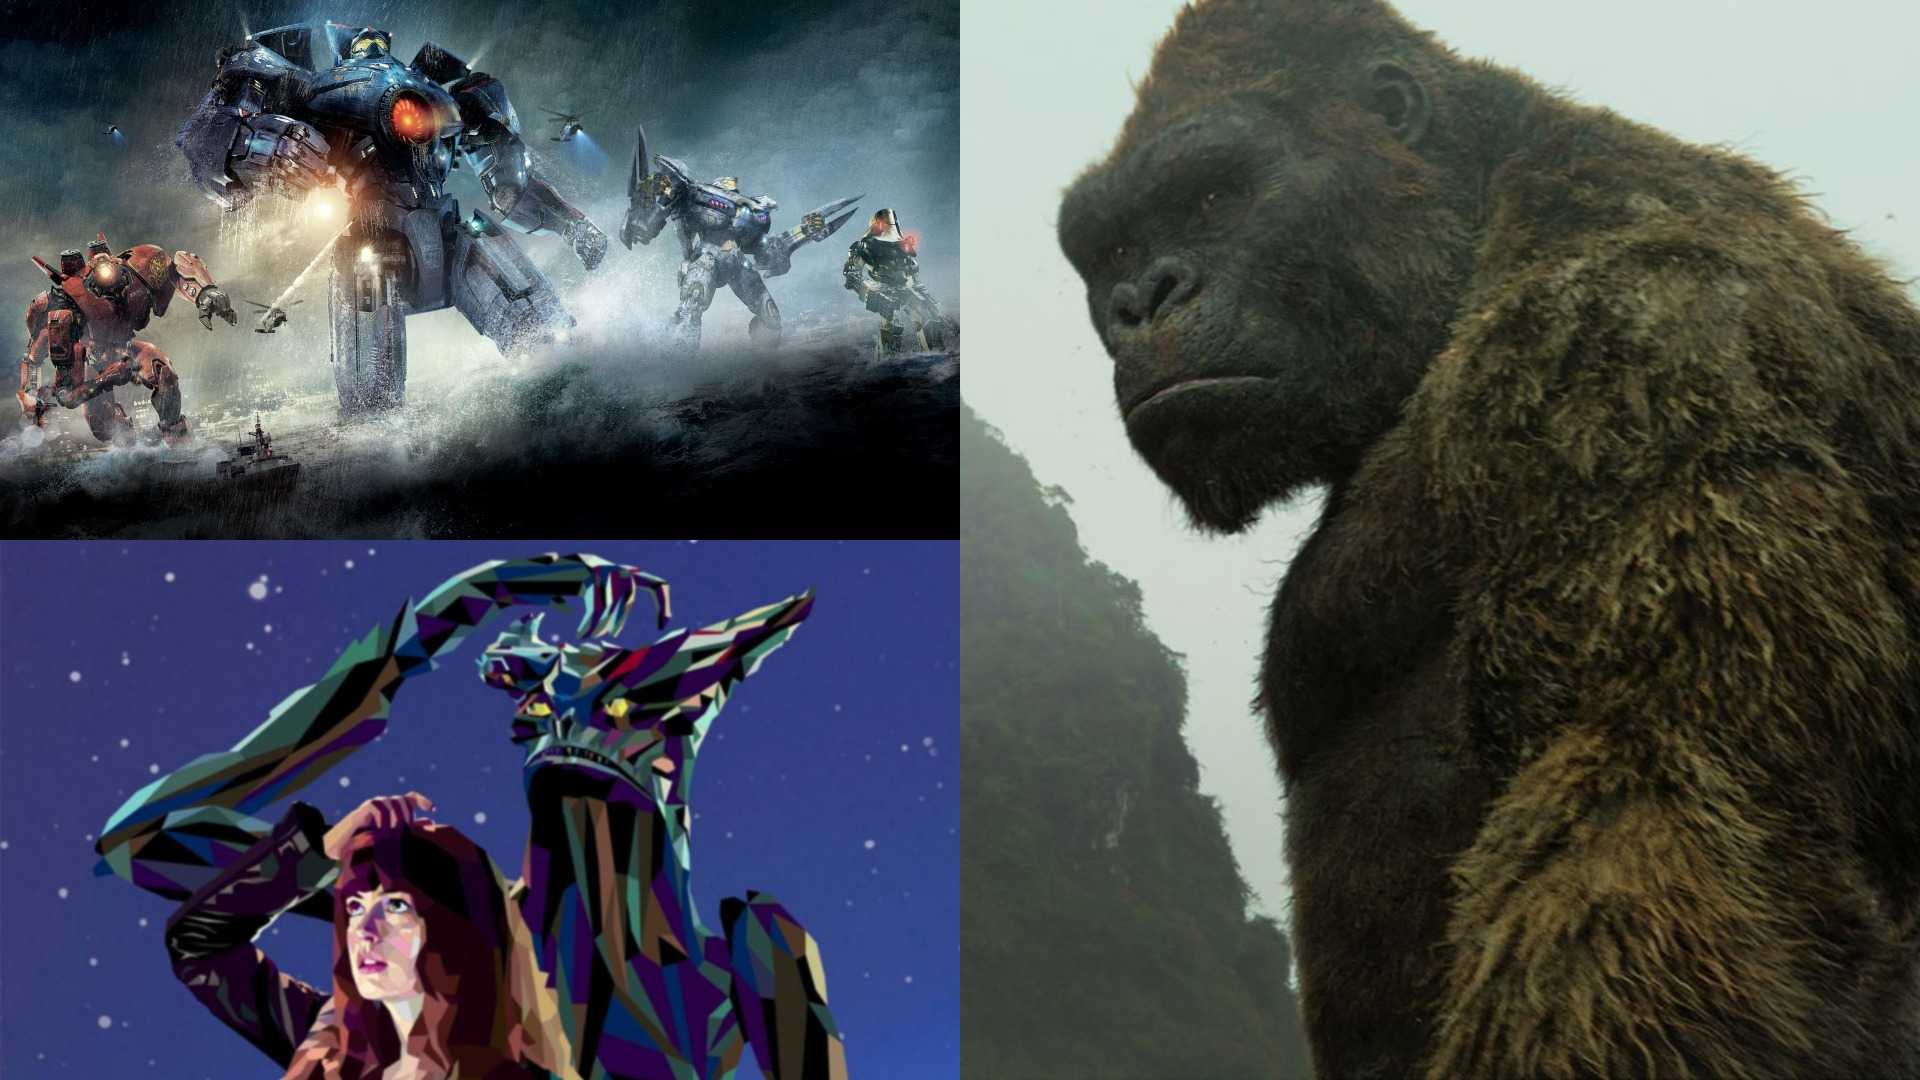 13 Badass Monster Movies To Watch Before Seeing Pacific Rim Uprising Moviefone